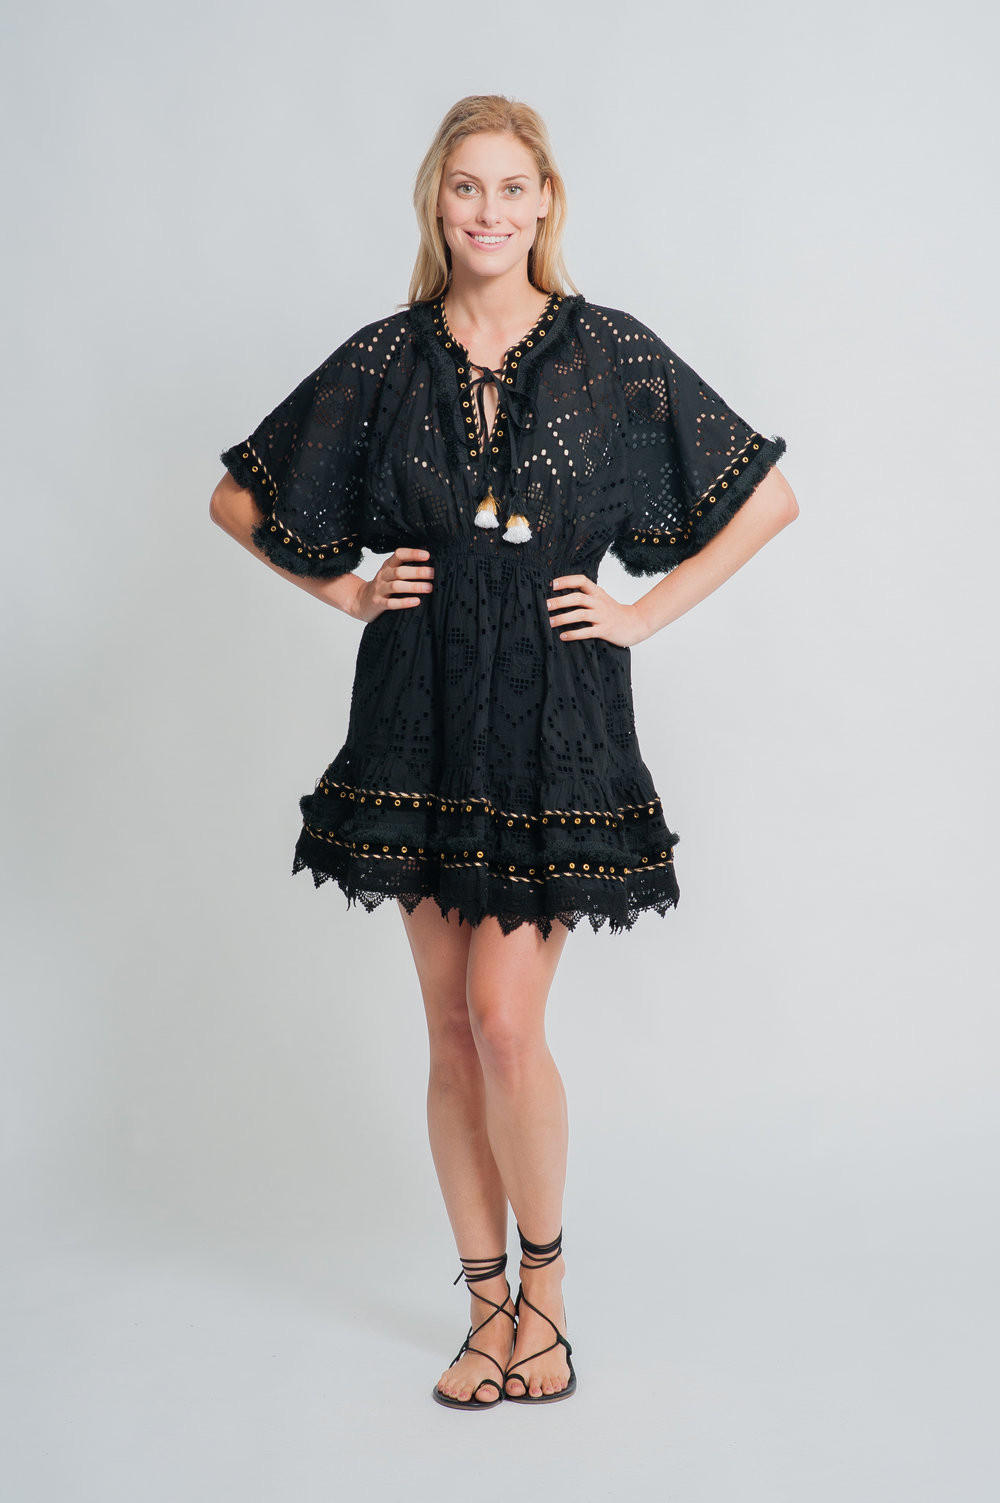 SS19-32 LA MANDALA MINI CUTWORK LACE MINI KAFTAN DRESS